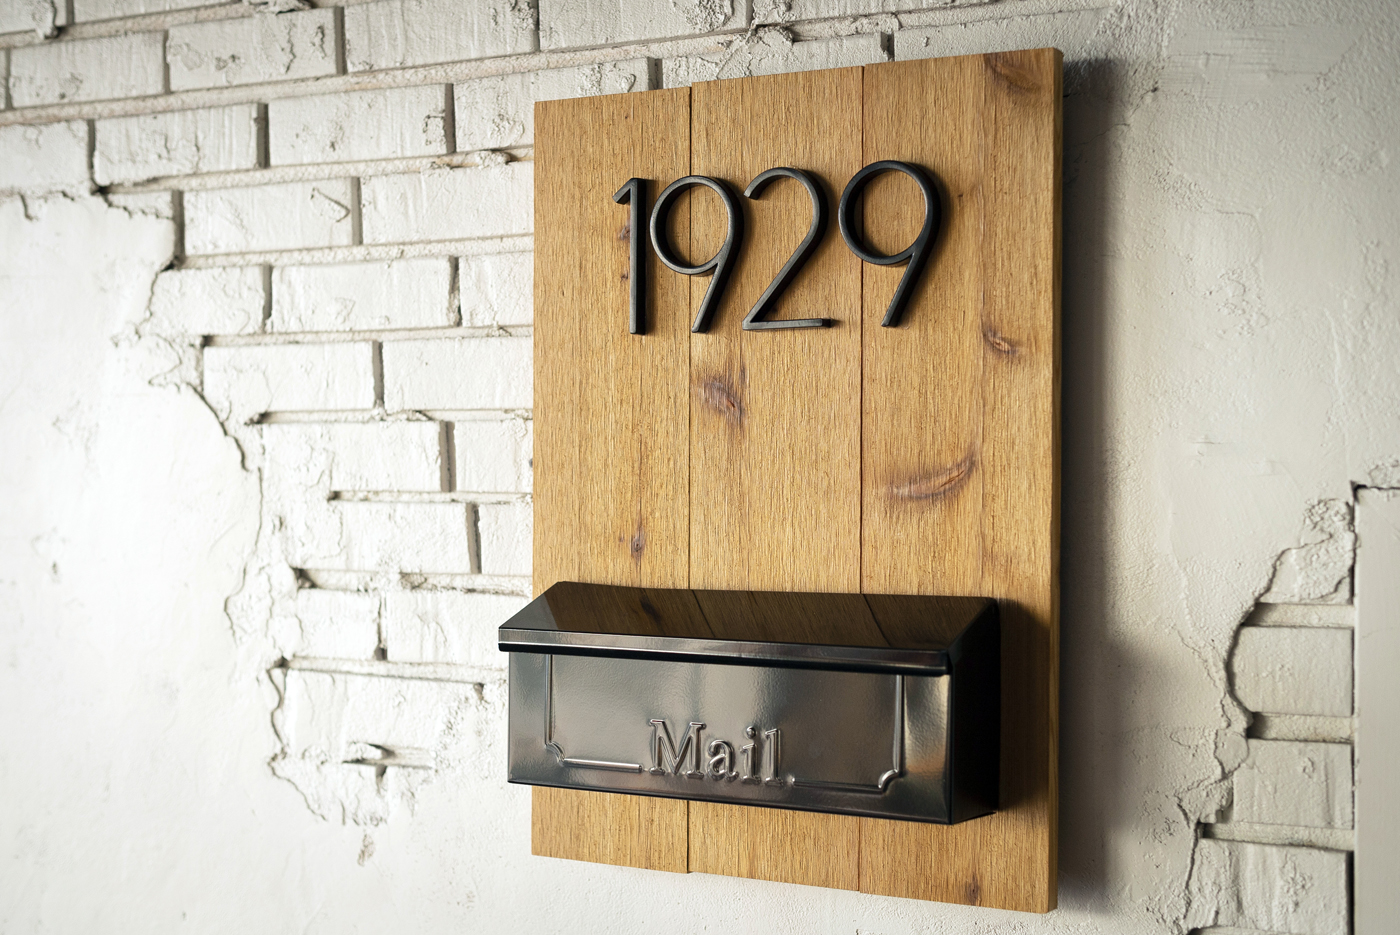 DIY House Number Mailbox